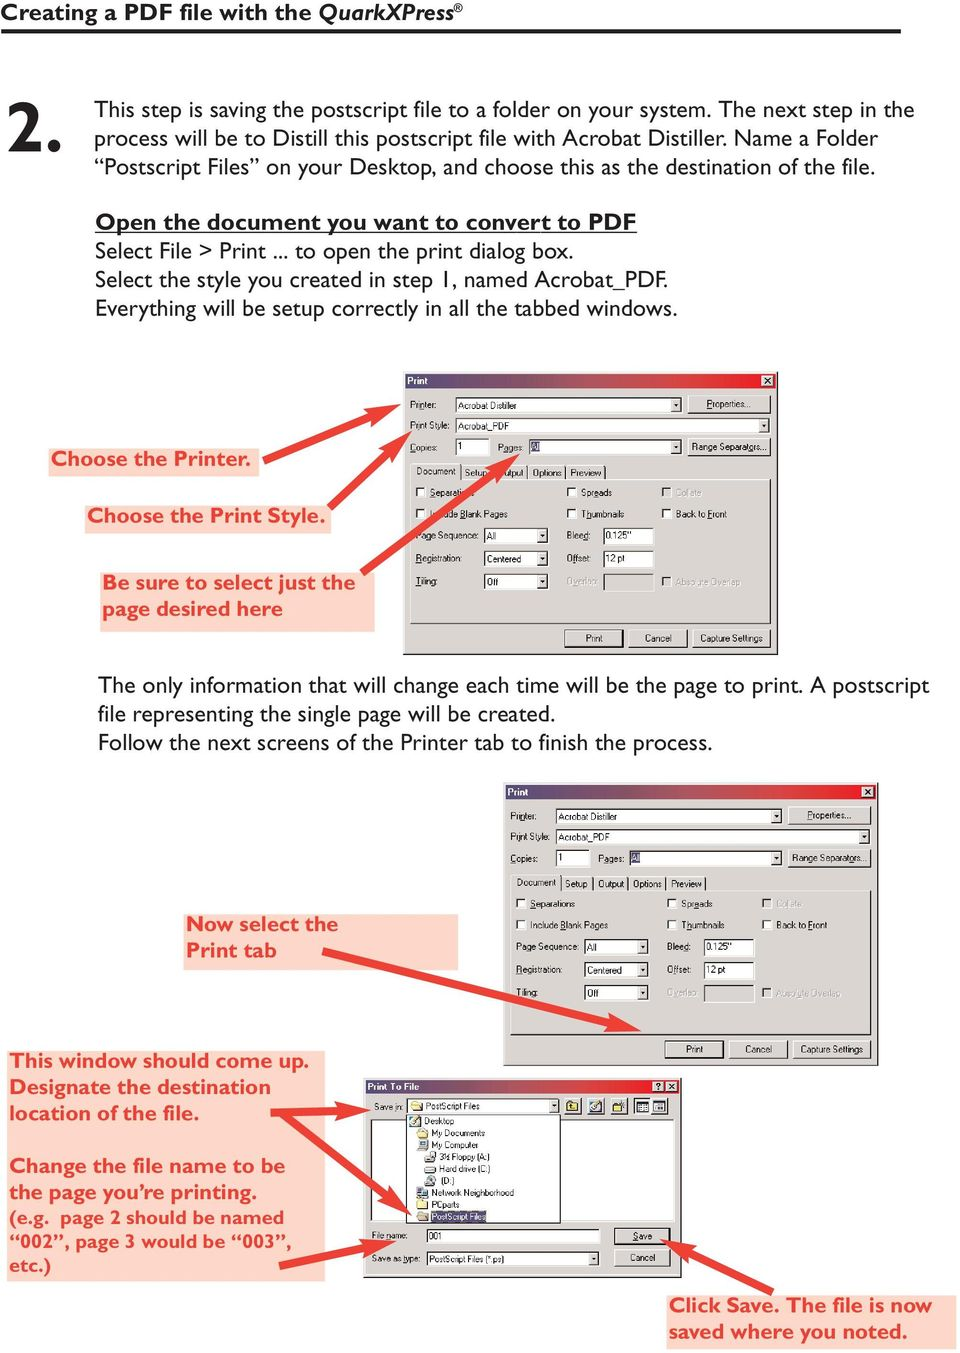 Open the document you want to convert to PDF Select File > Print... to open the print dialog box. Select the style you created in step 1, named Acrobat_PDF.